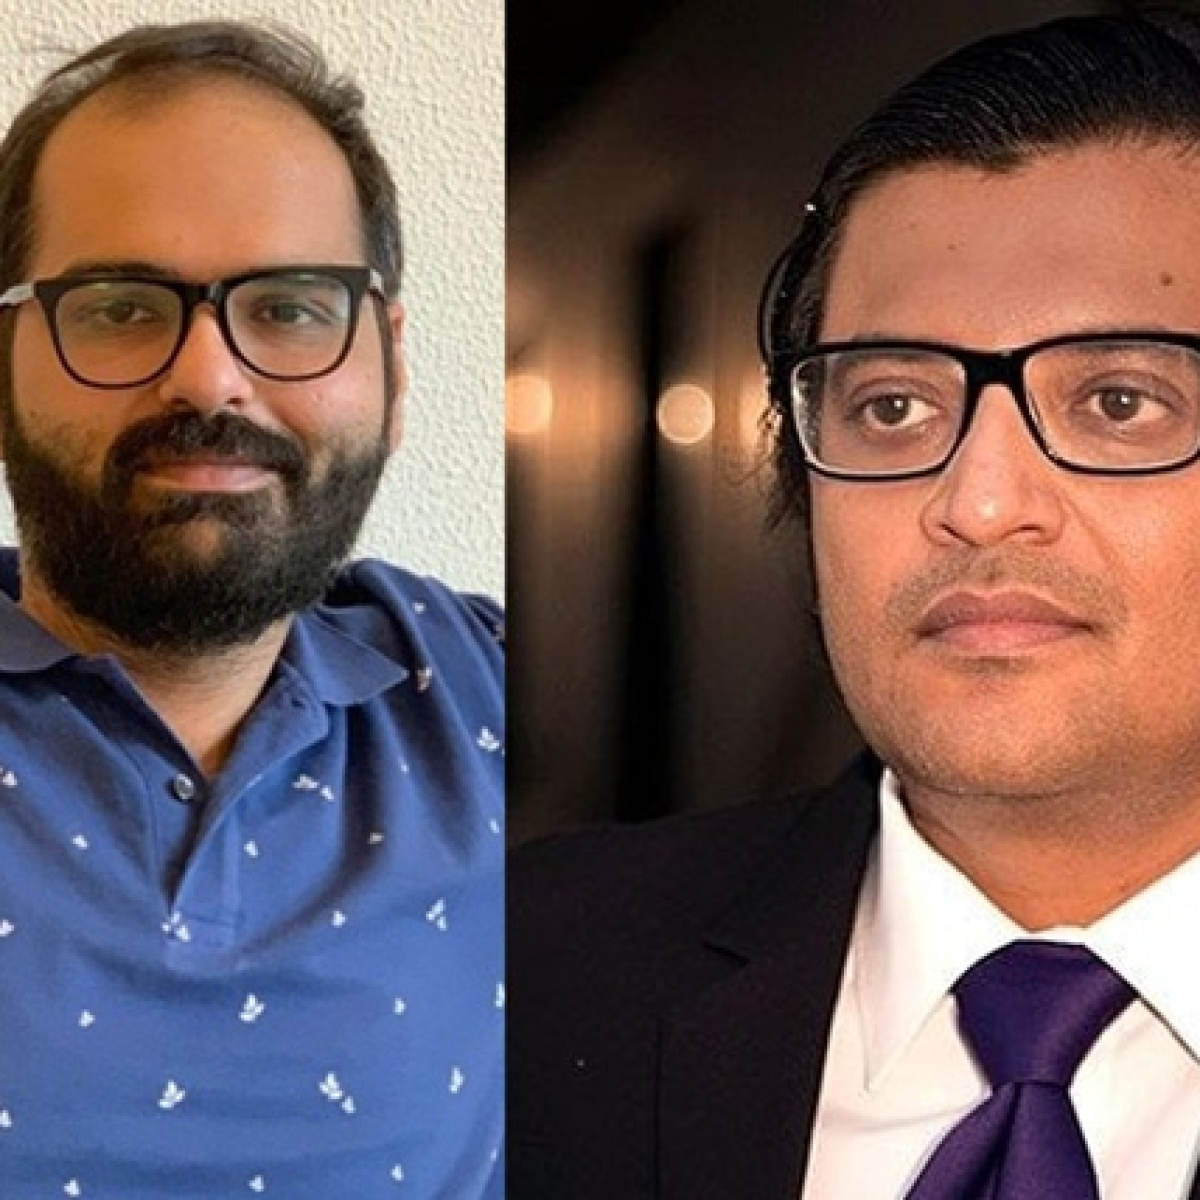 'Are you coward or a nationalist?': Kunal Kamra heckles Arnab Goswami on a flight